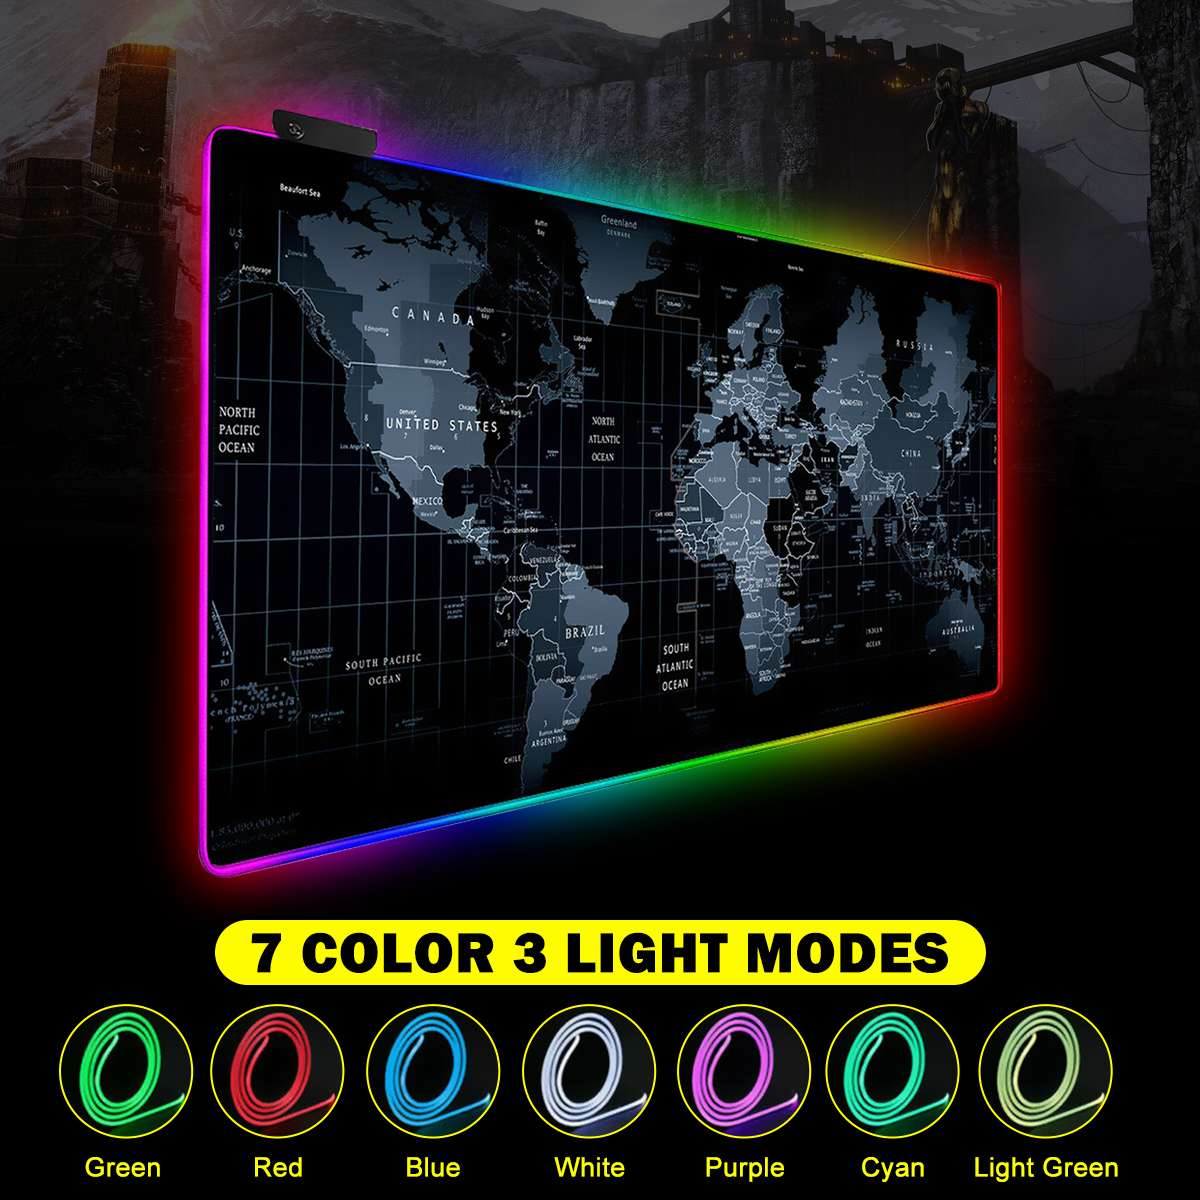 LED Gaming Mouse Pad RGB Gamer Large Mousepad LED Lighting USB Keyboard Colorful Desk Pad Mice Mat For PC Laptop Desktop